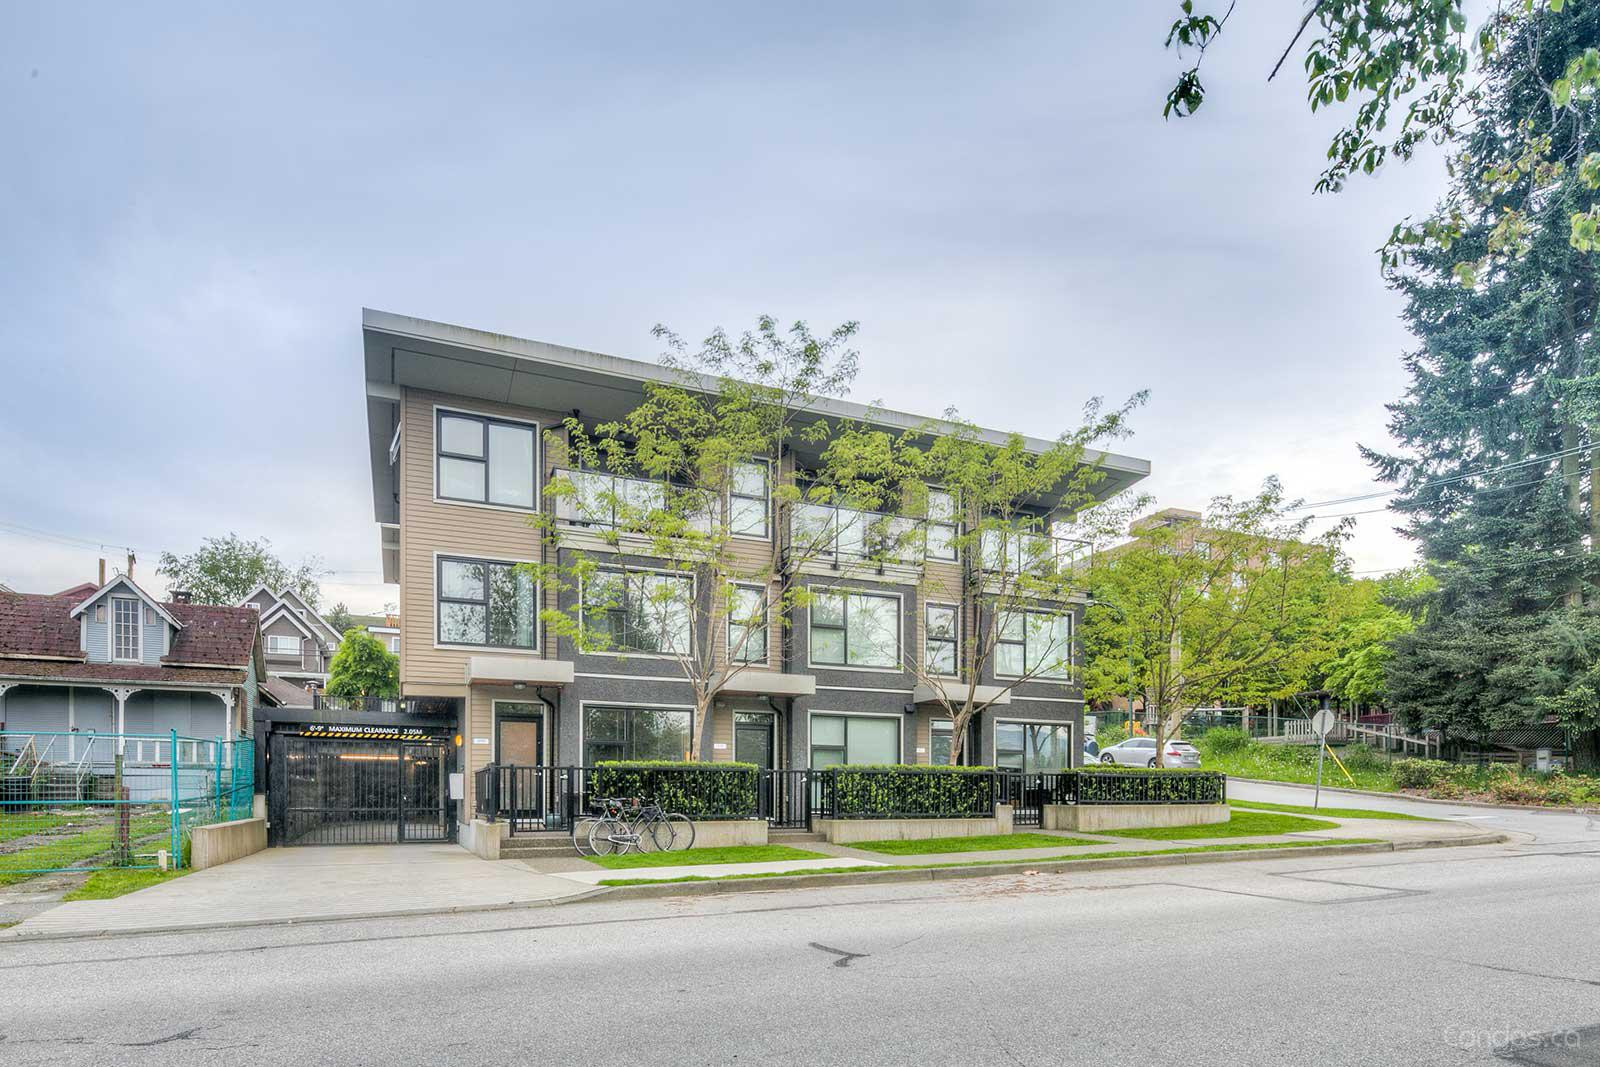 7 & W Townhomes at 1002 E 7th Ave, Vancouver 1